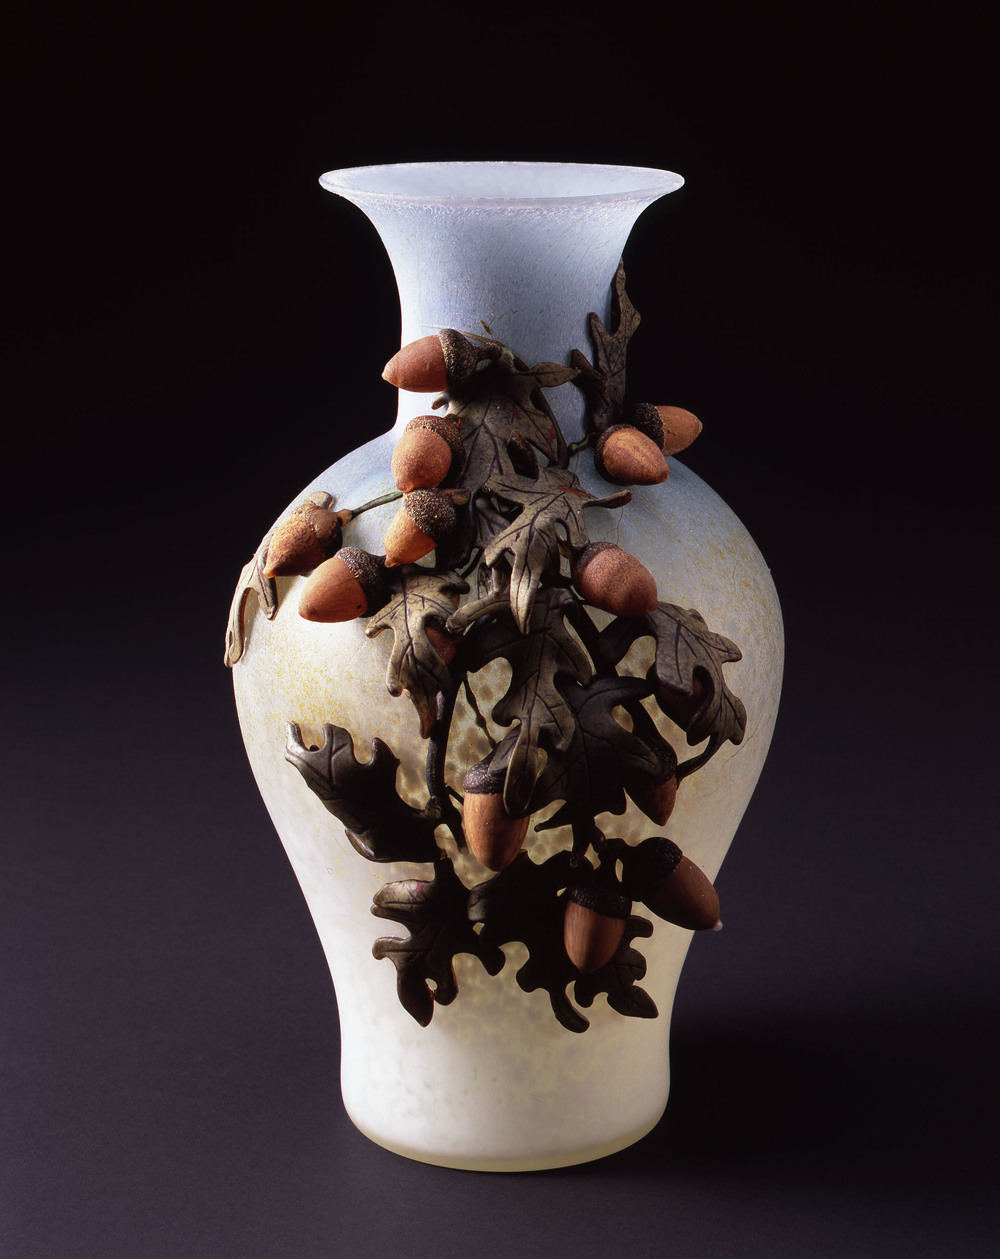 William Morris,  Ice Blue Vase with Oak Leaves and Acorns    (2004, glass, 13 1/2 x 8 3/4 x 7 3/4 inches), WM.45